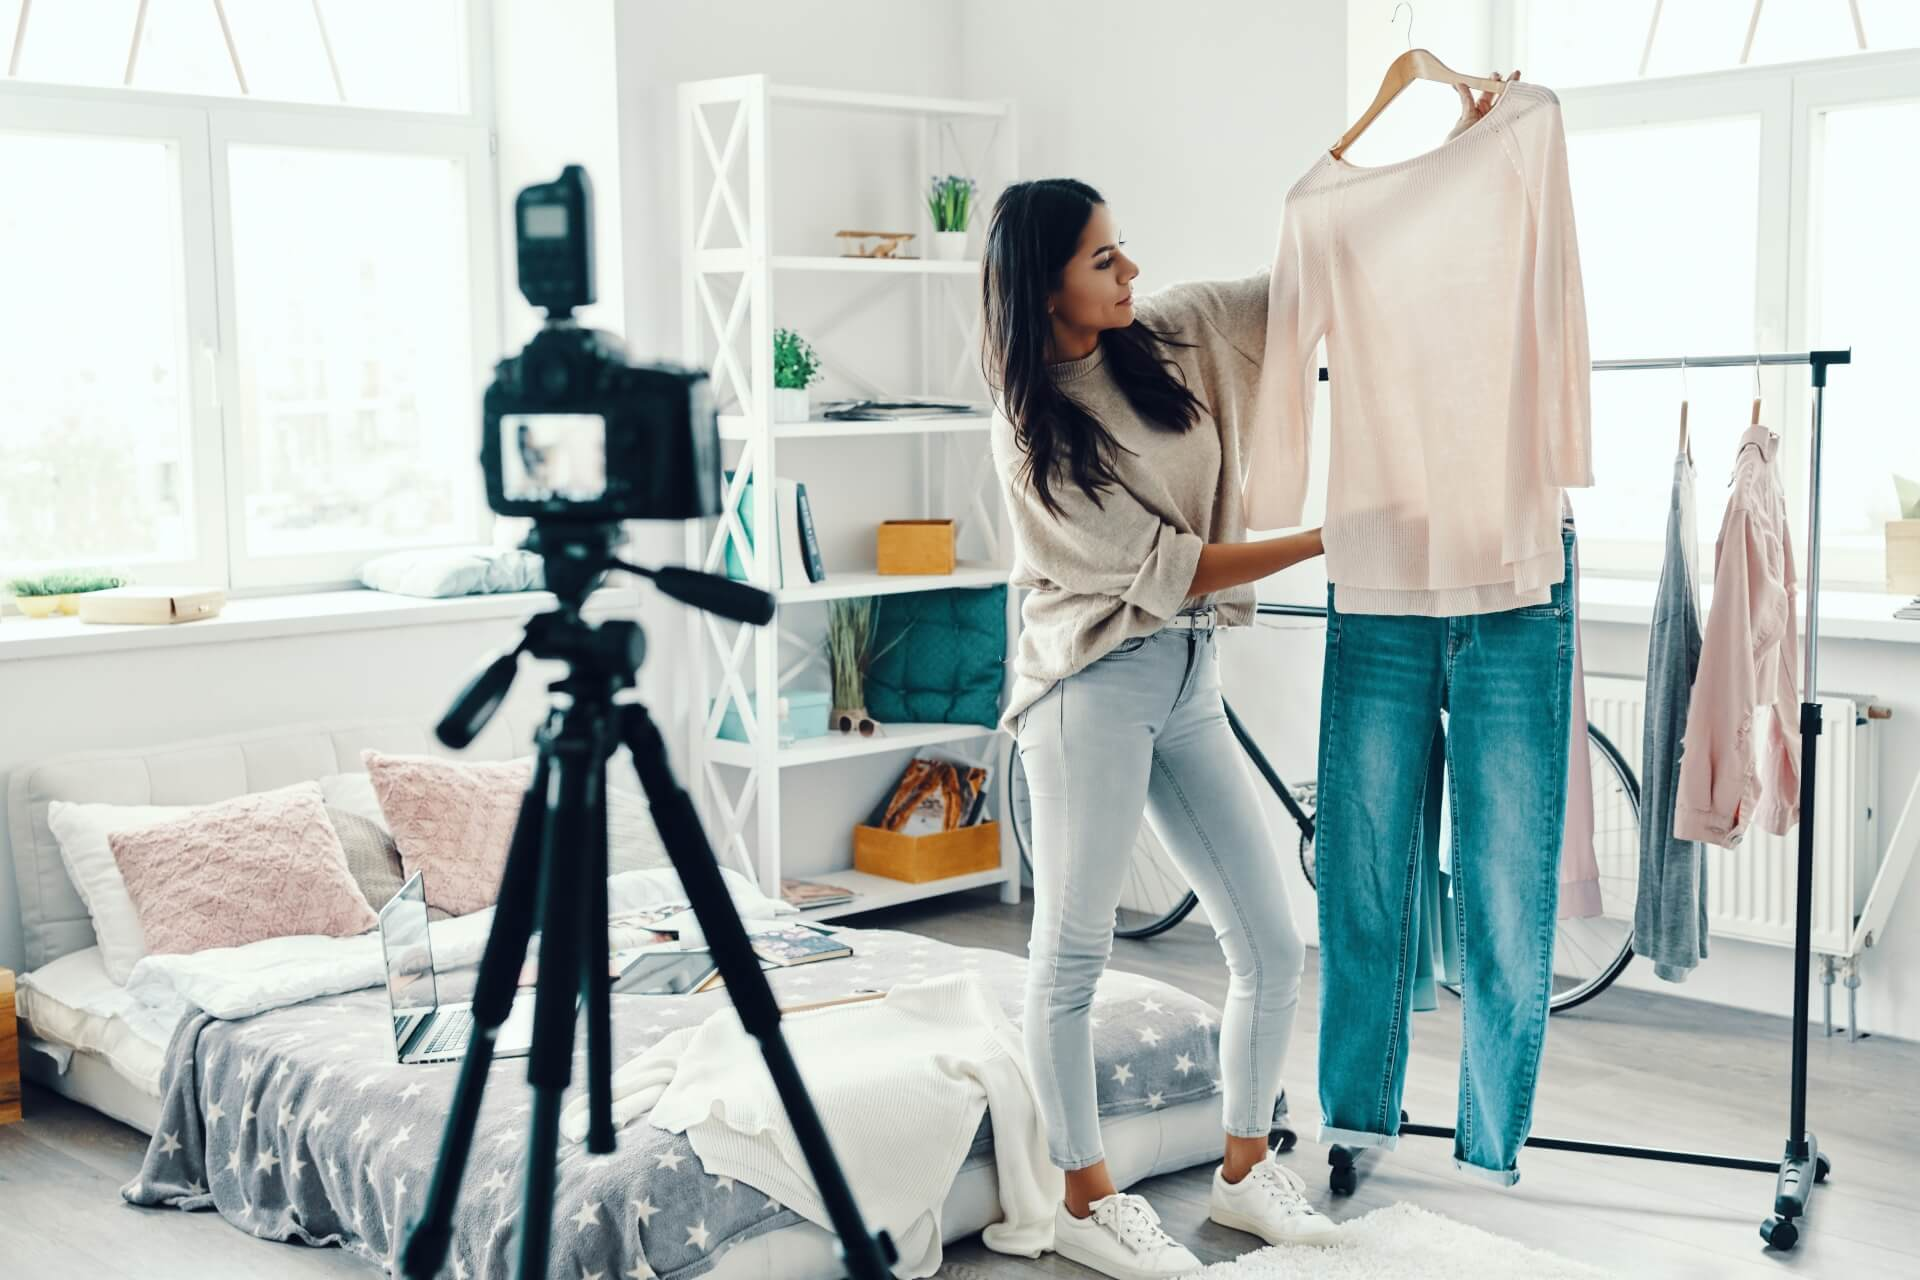 Influencer films herself putting together a potential outfit